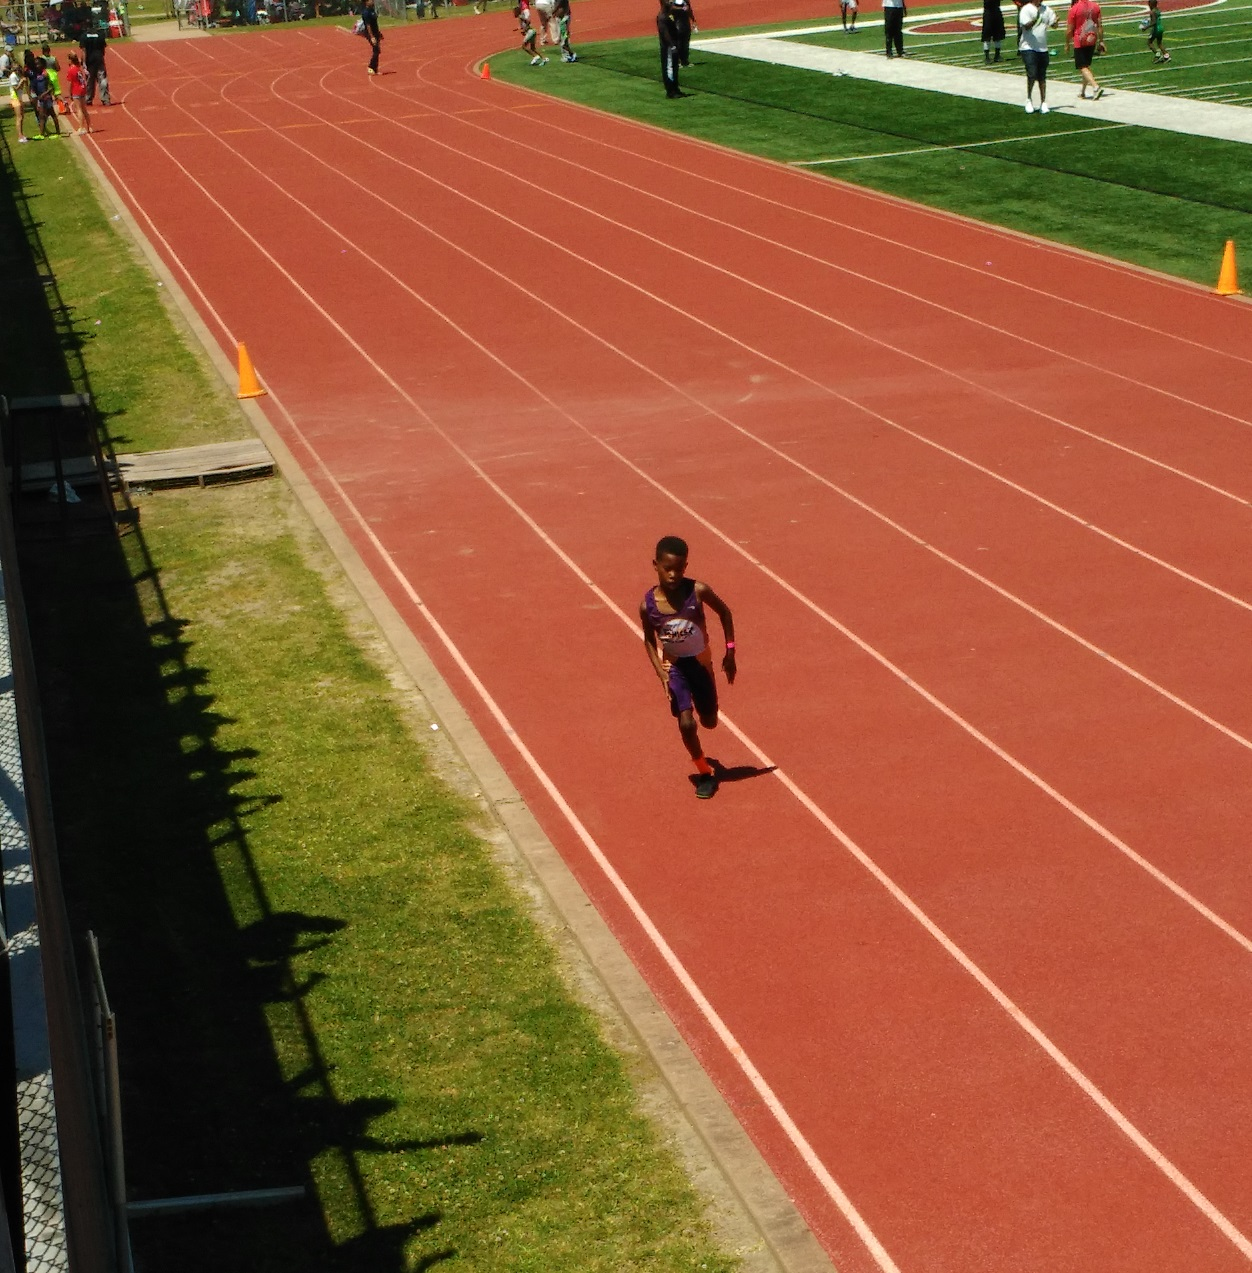 Cayden running the 400